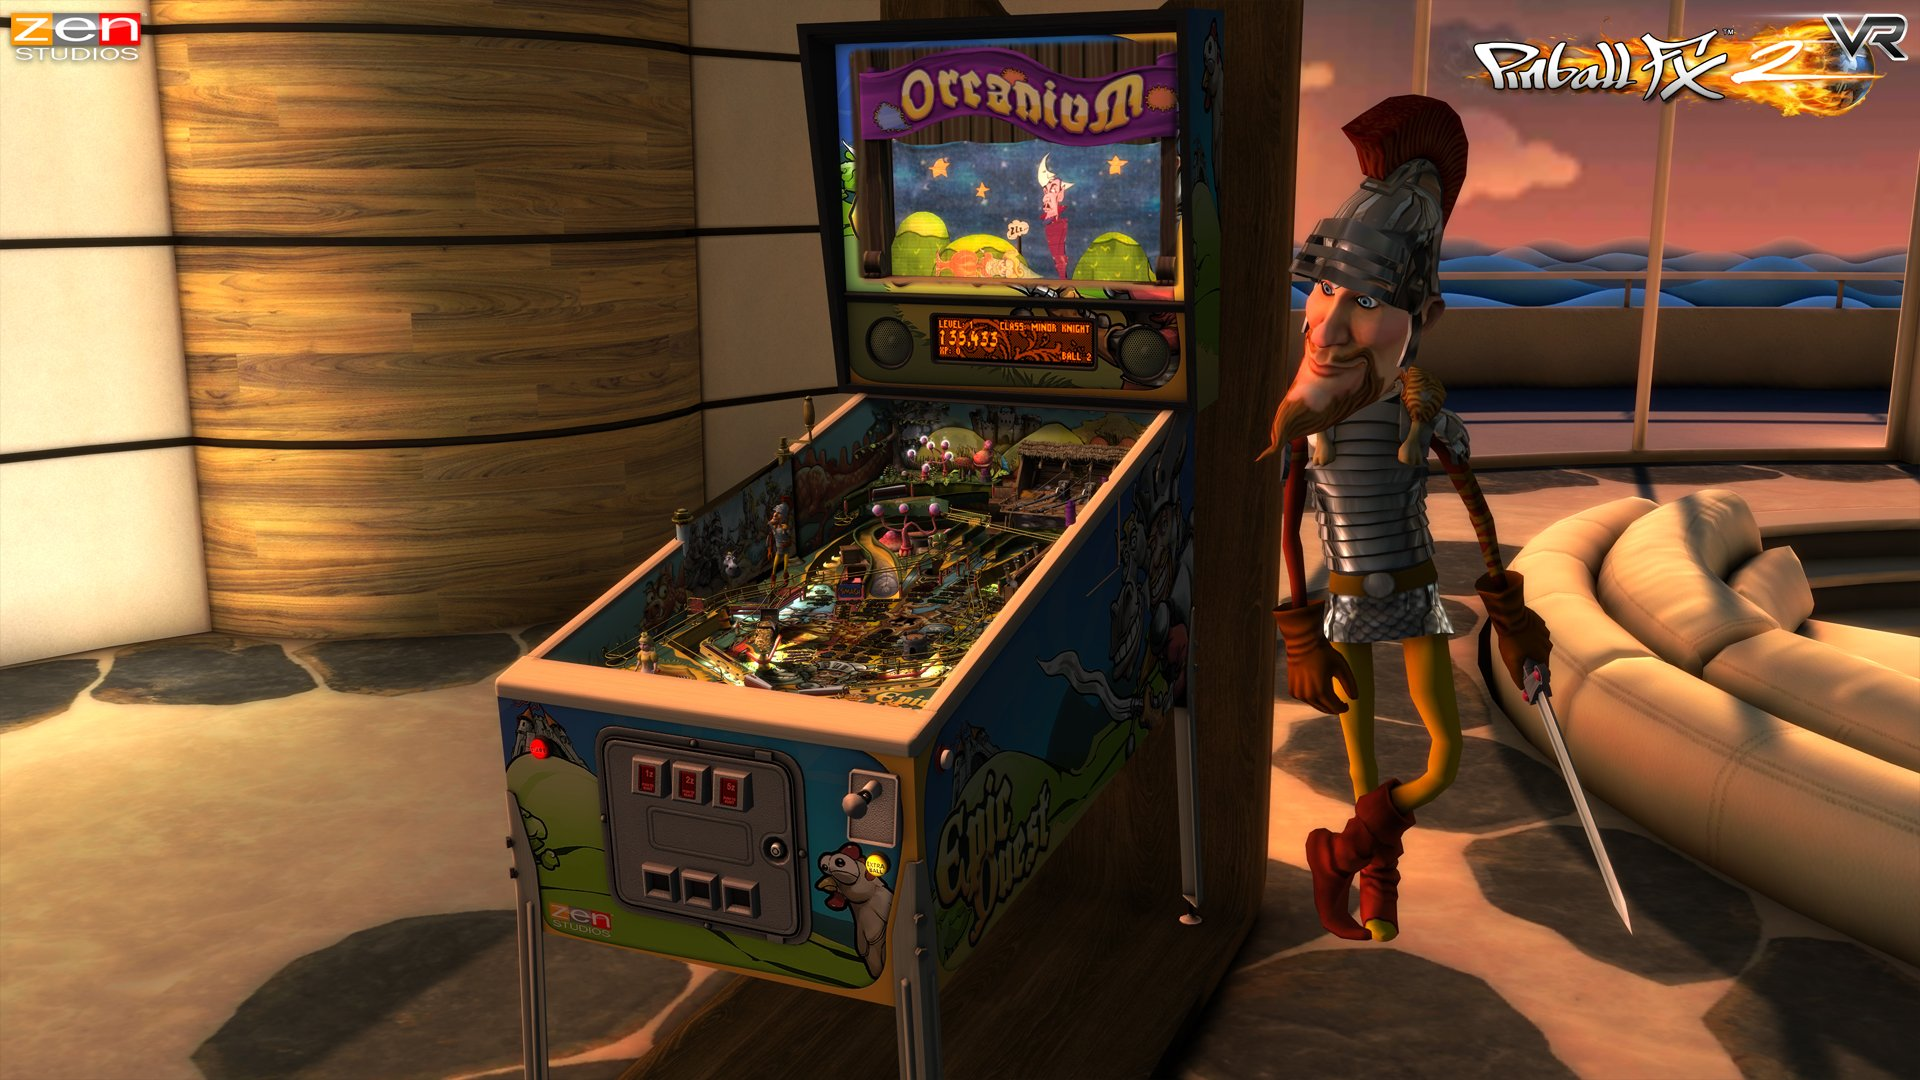 Pinball_FX2_VR_gear_vr_screenshot_EpicQuest